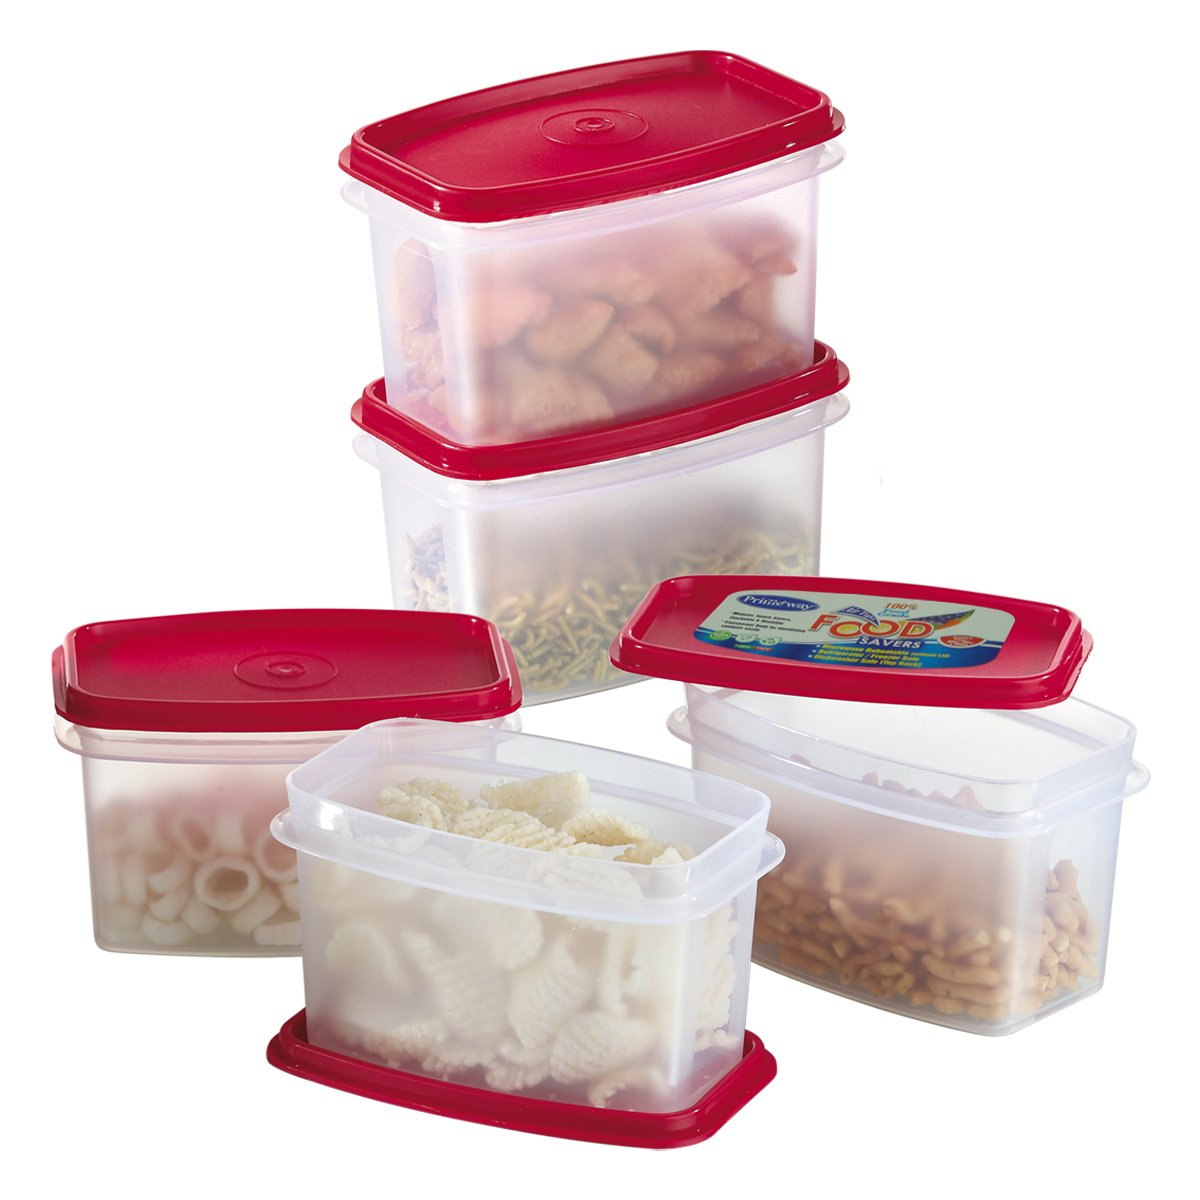 Buy Primeway Modular Kitchen Food Savers Plastic Storage Containers, 750ml,  5 Pcs Set, Red Online At Low Prices In India   Amazon.in